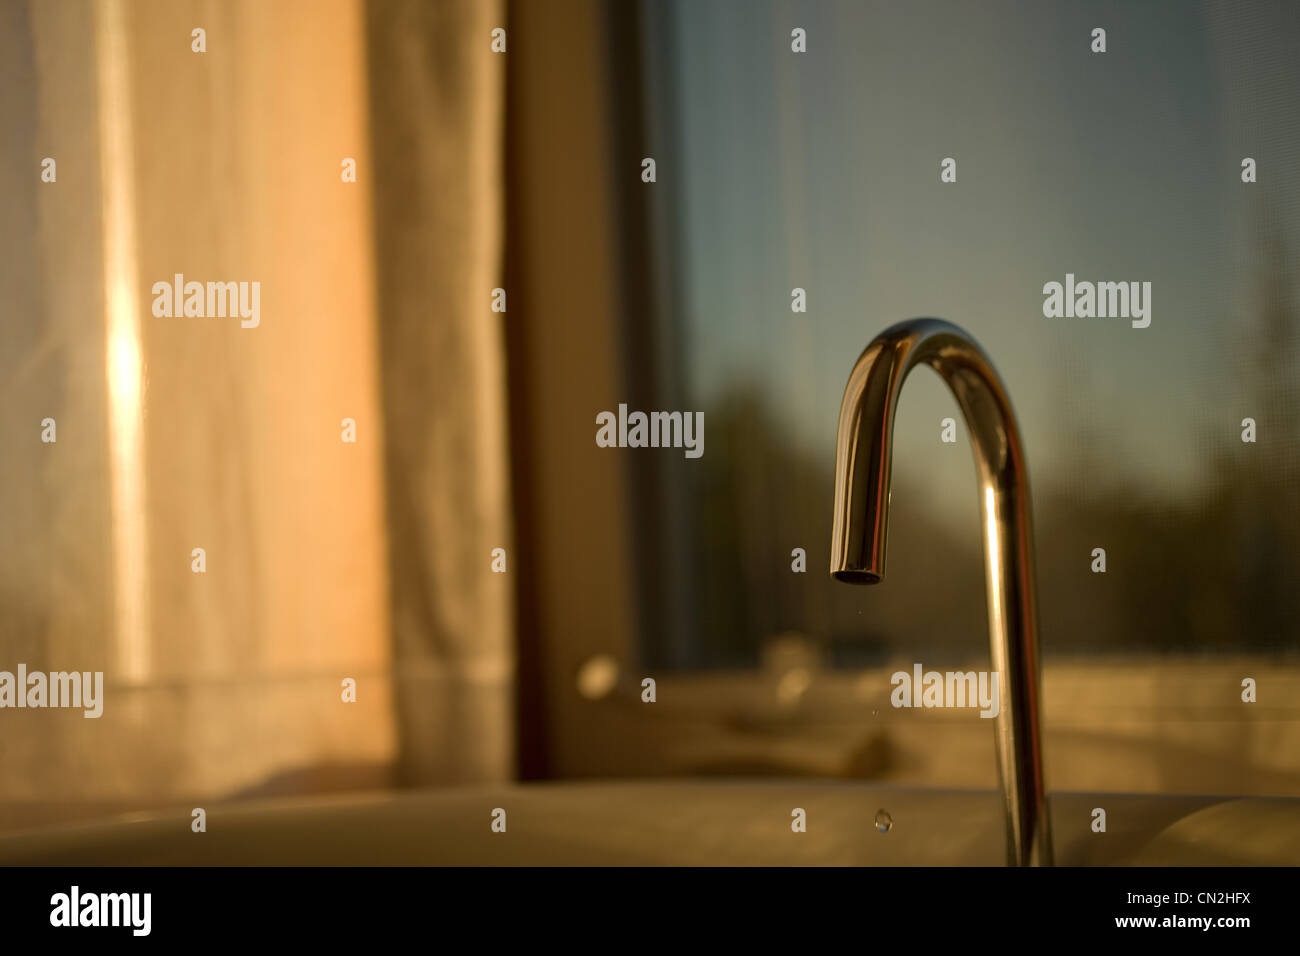 Kitchen sink faucet, close up - Stock Image